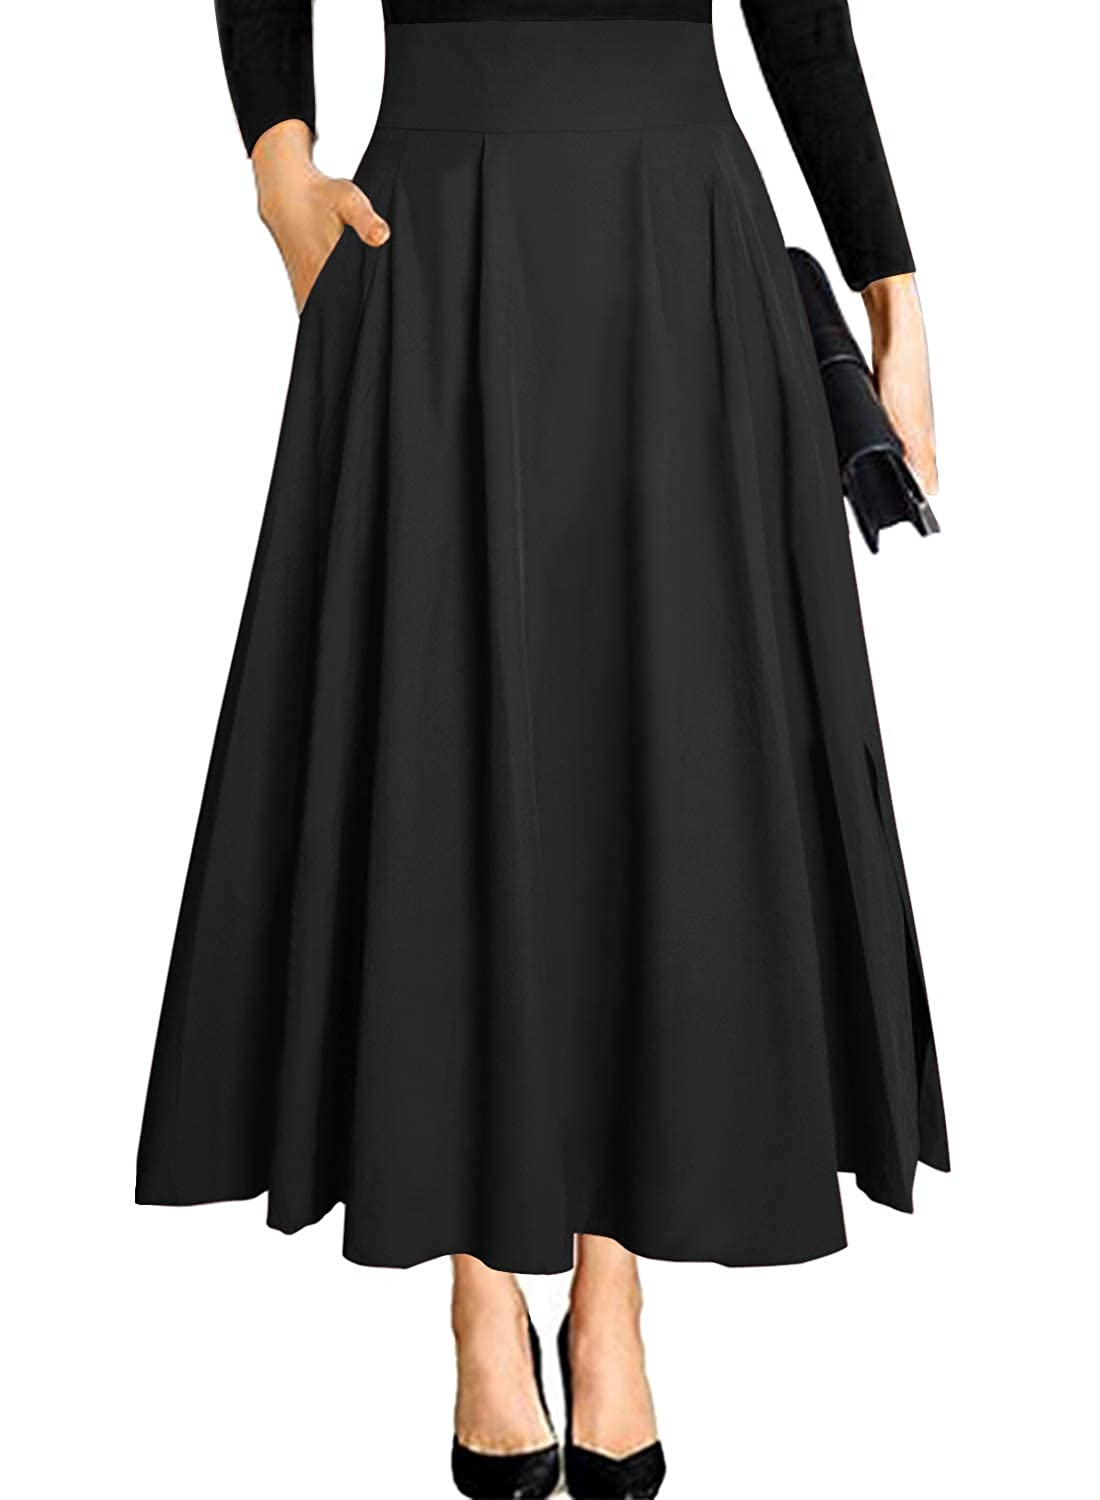 Steampunk Costume Essentials for Women Ranphee Womens Ankle Length High Waist A-line Flowy Long Maxi Skirt with Pockets $25.99 AT vintagedancer.com